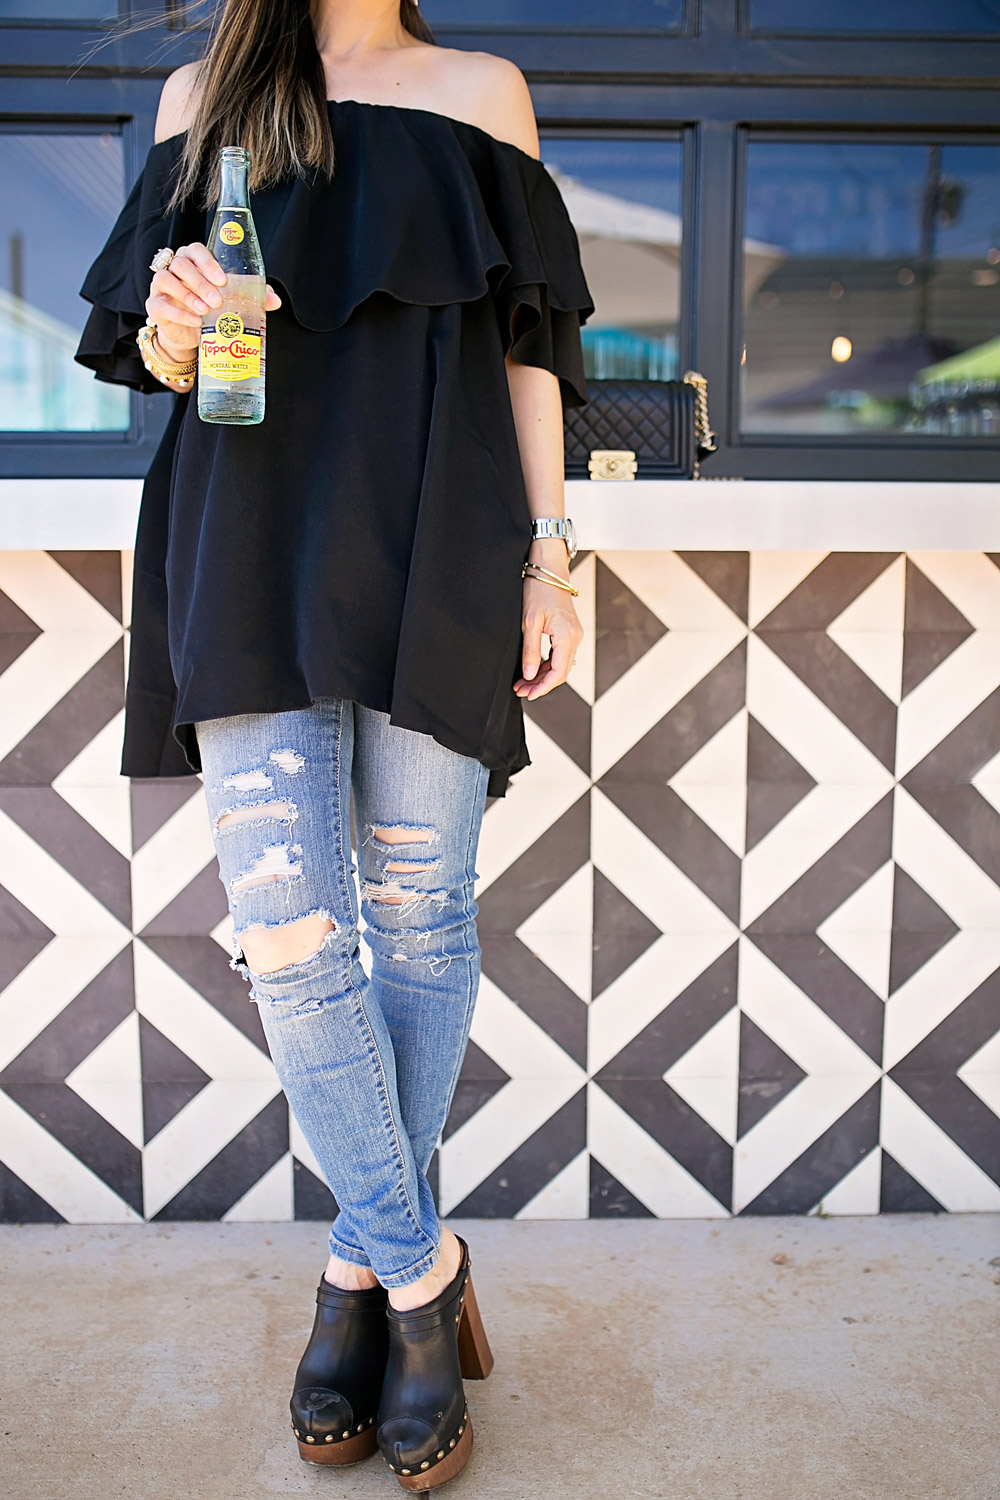 black off the shoulder dress with ripped jeans and clogs